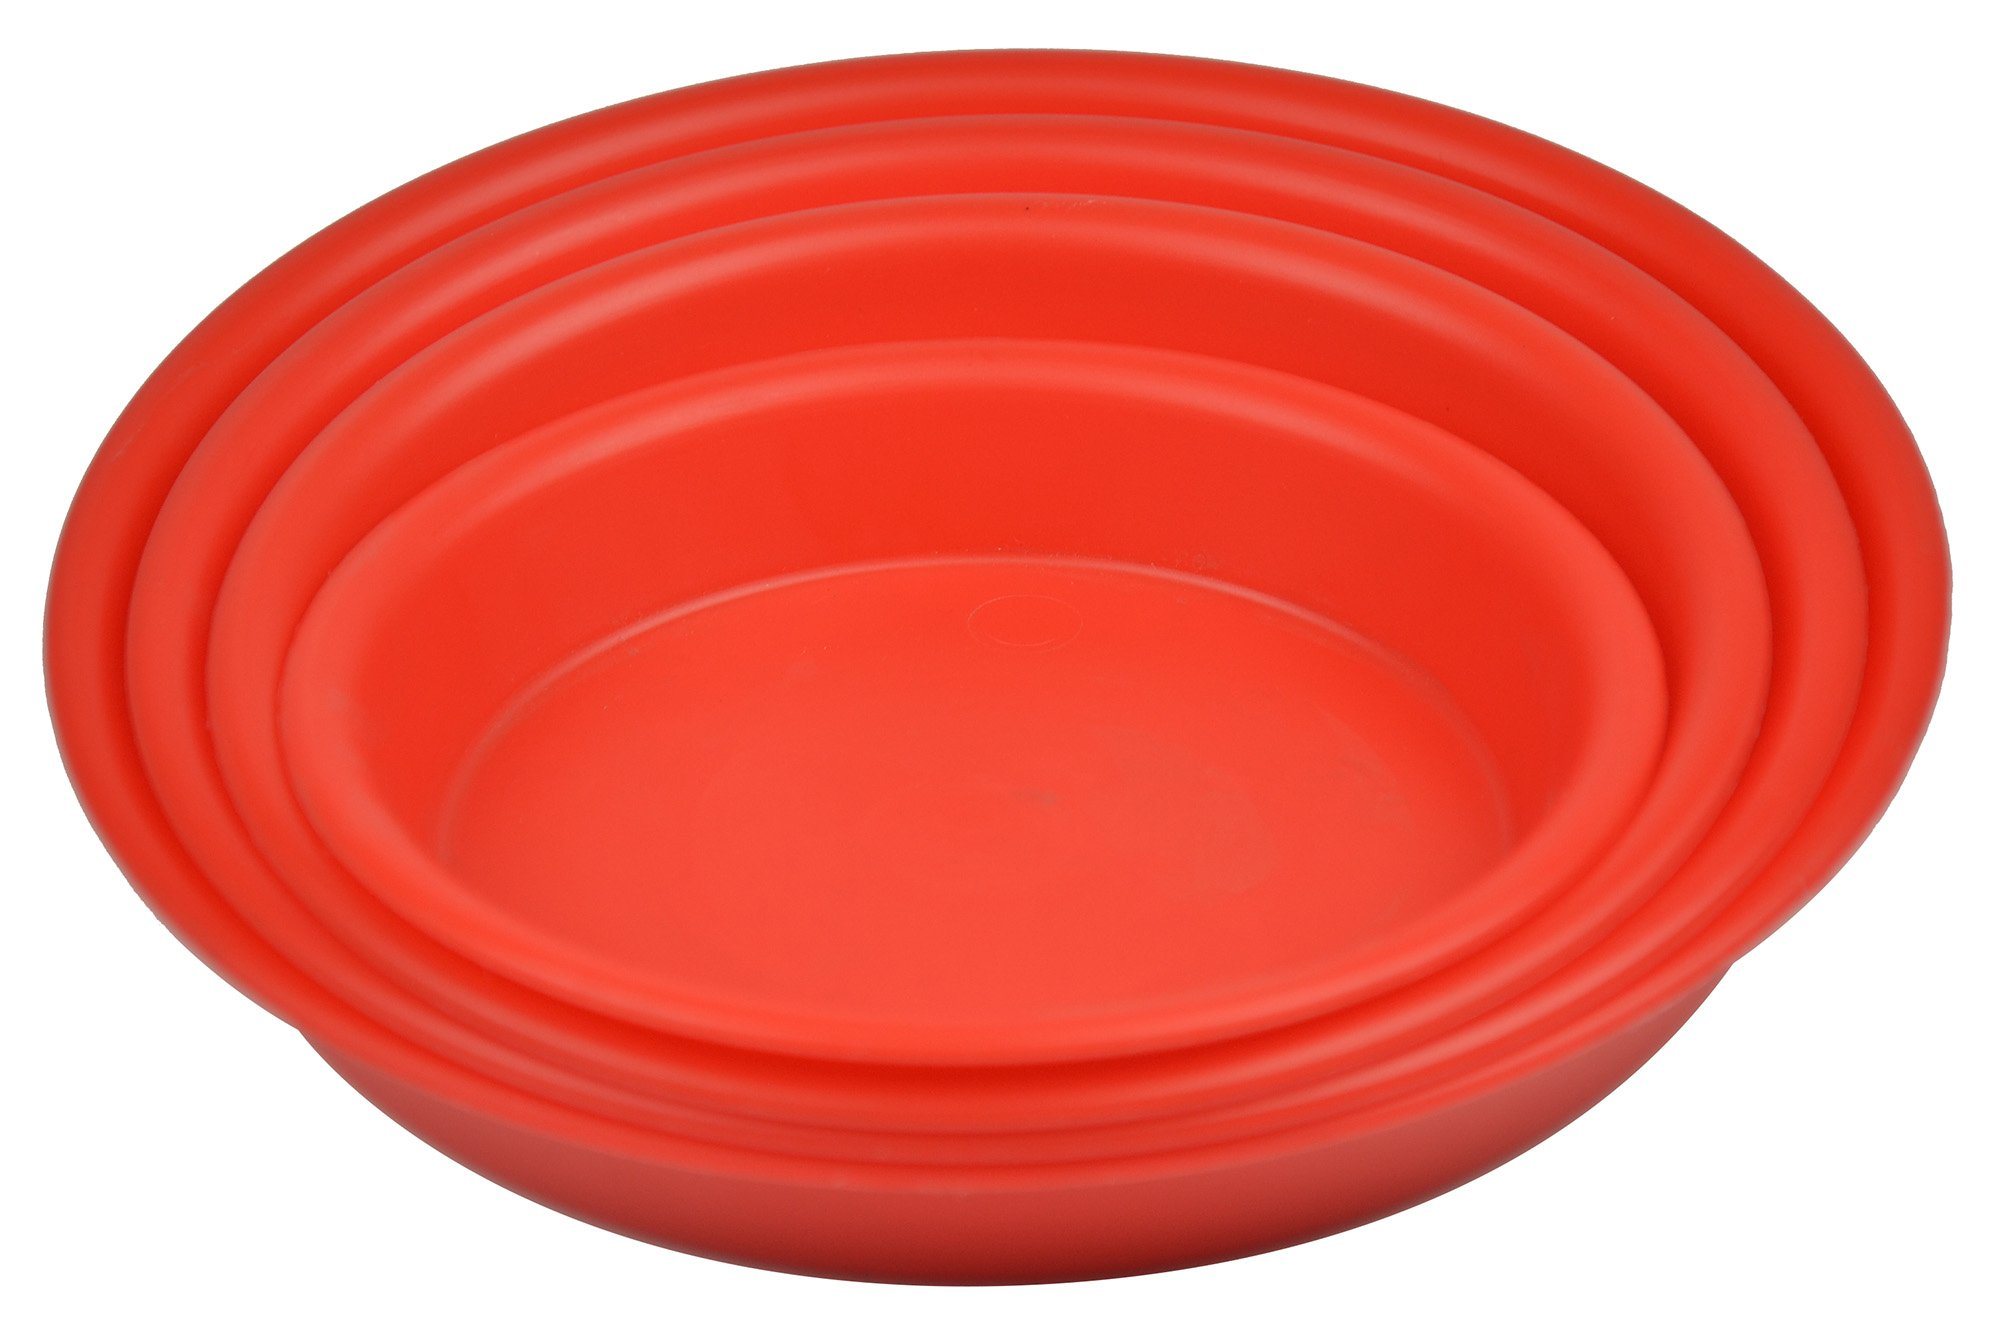 5.3'' Round Plant Saucer Planter Tray Pat Pallet for Flowerpot,Red,1400 Count by Zhanwang